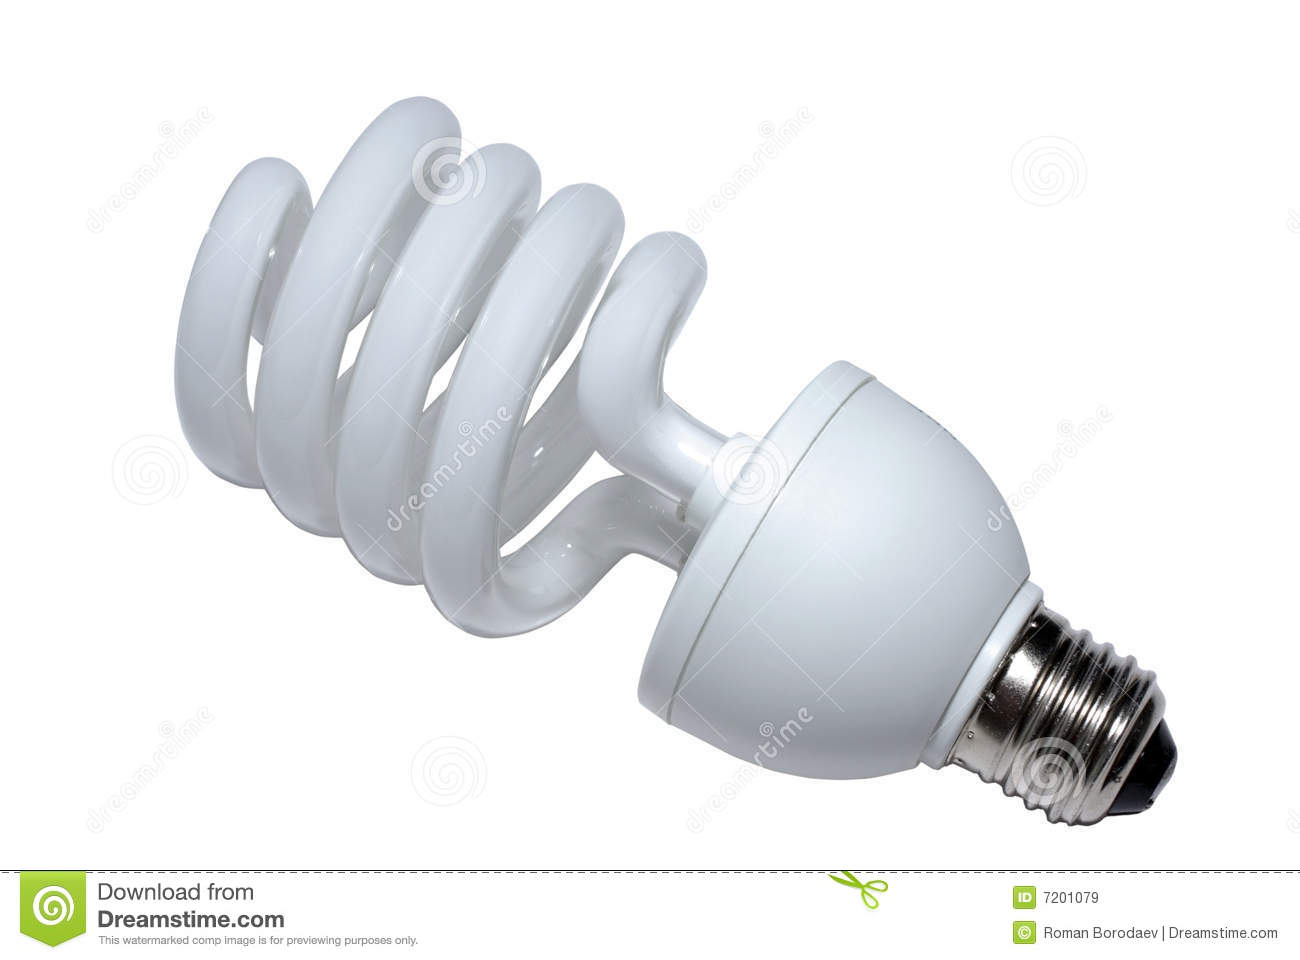 Light bulb energy saving lamp lightbulb fluorescent isolated on white background bright technology glass save power electric eco